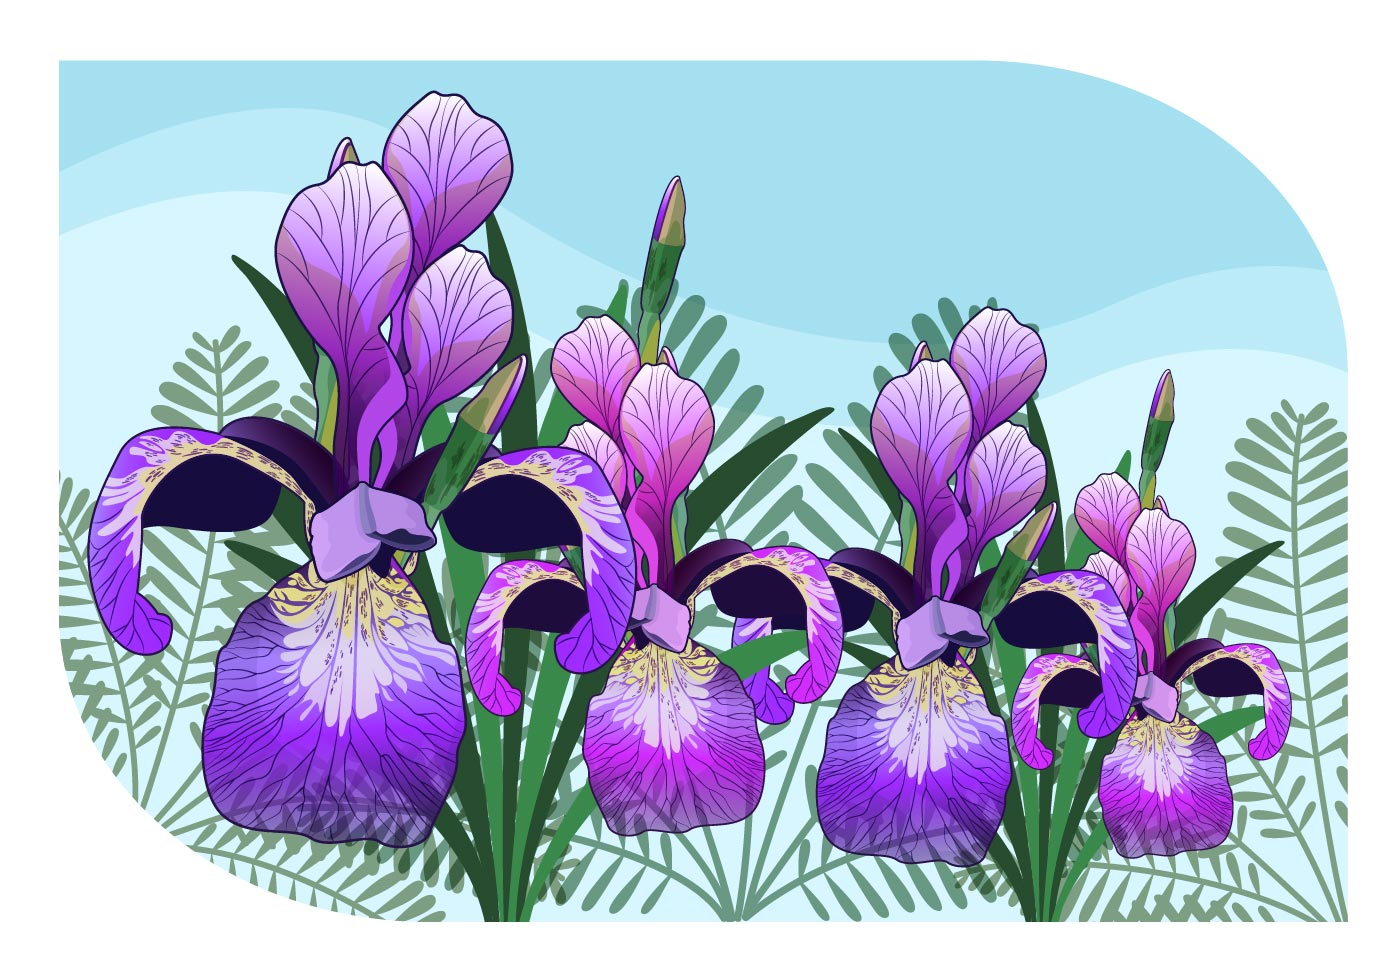 Iris flower free vector art 10625 free downloads izmirmasajfo Image collections